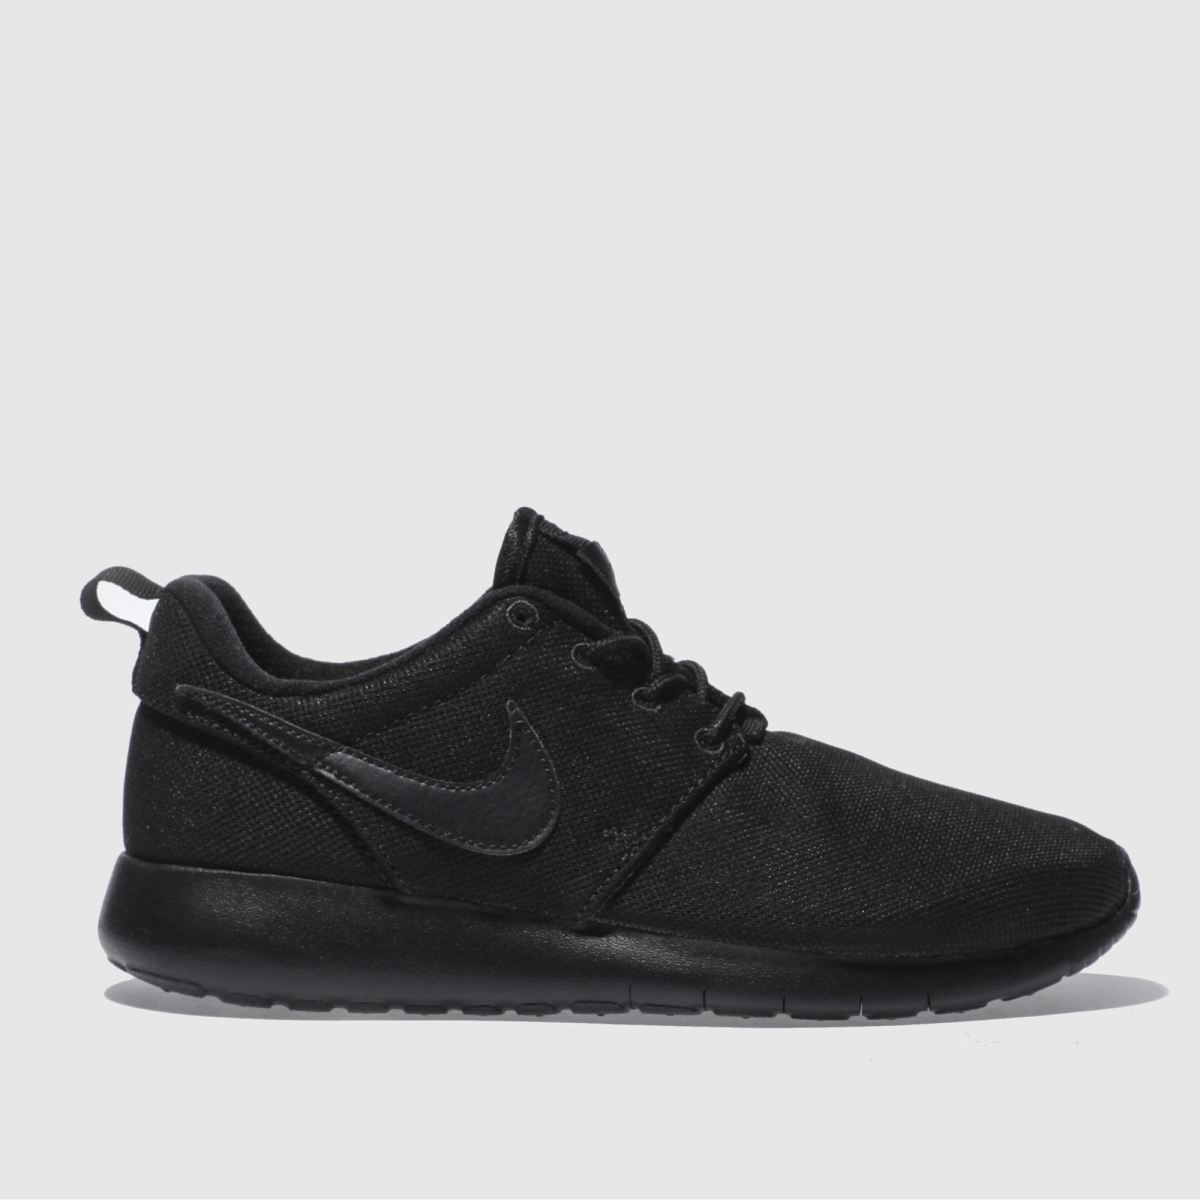 0a283052d69f Nike Roshe Run Men  s Trainers